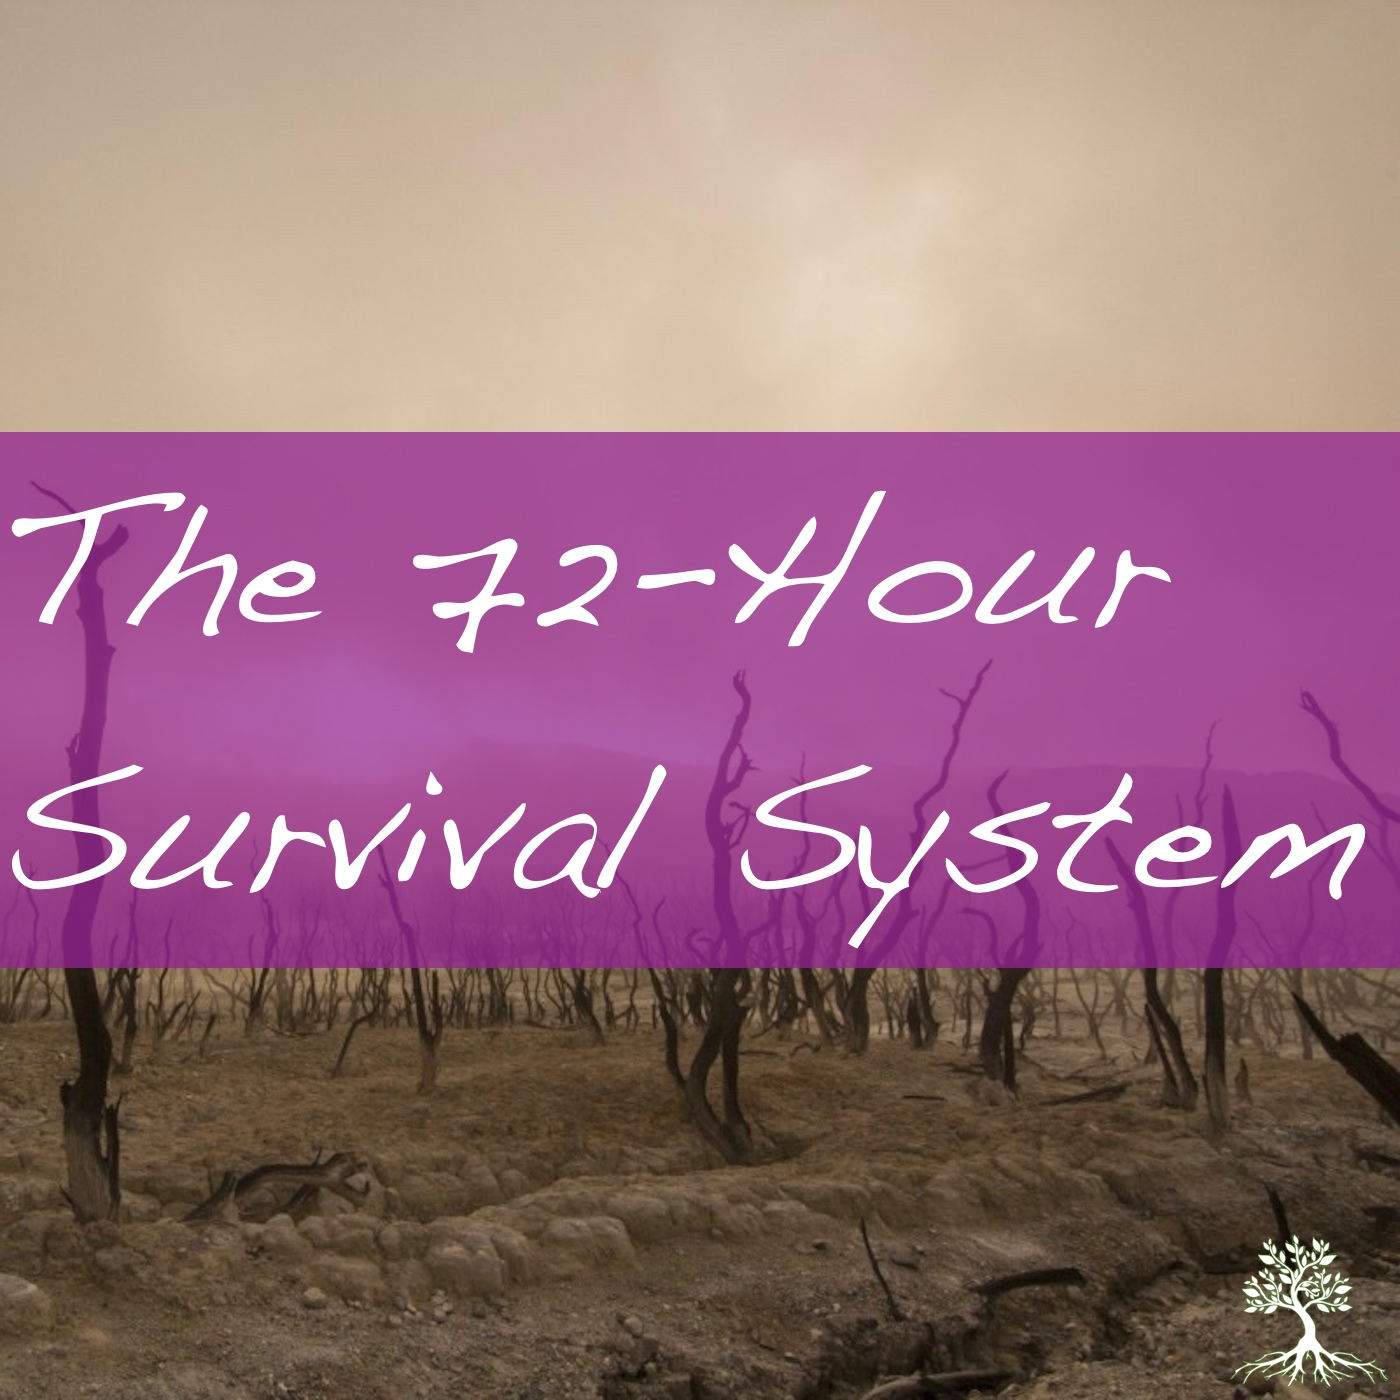 The 72-Hour Survival System (Chad Brekke 3/10/19)